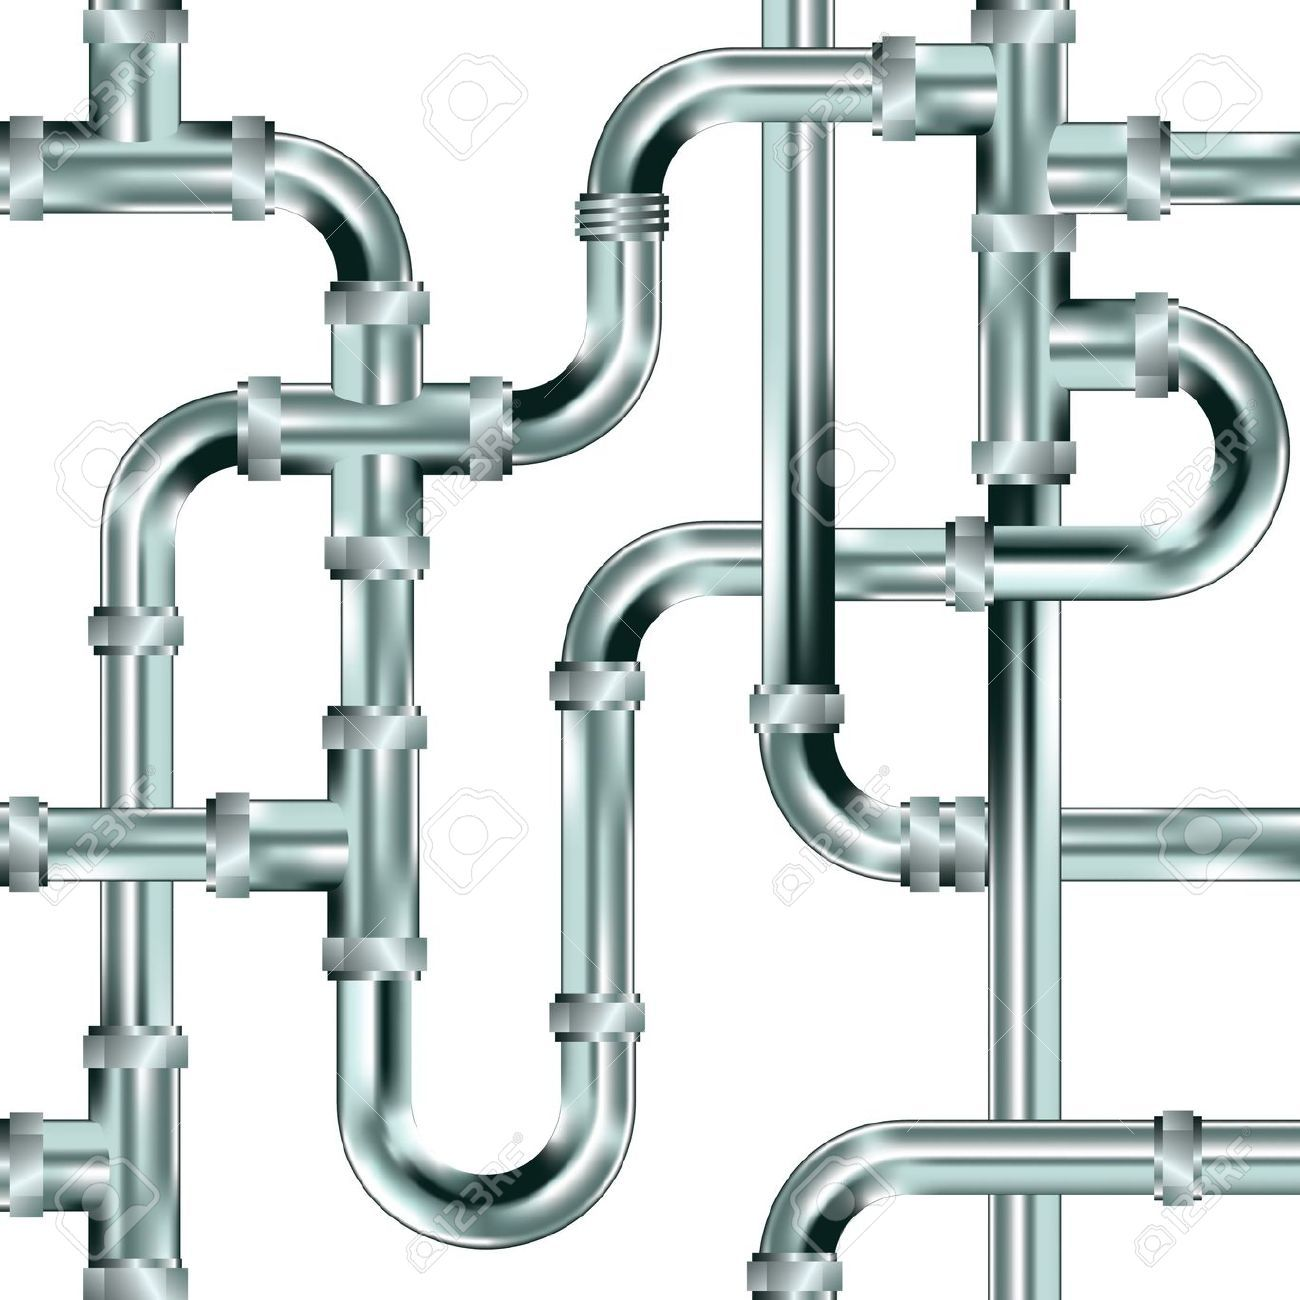 Water pipe pieces clipart jpg stock Plumbing Background Stock Photos Images, Royalty Free ... jpg stock